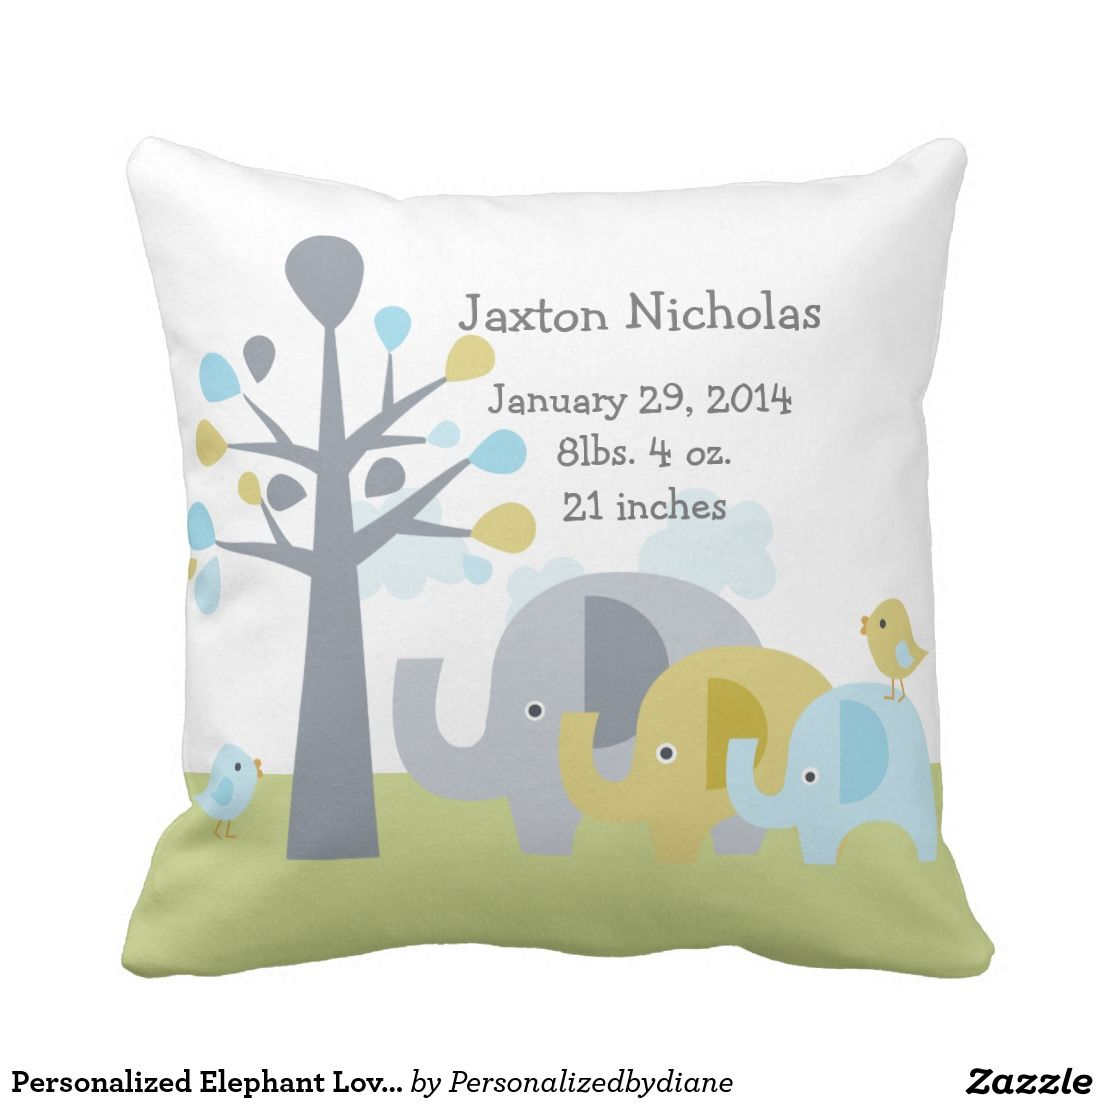 Personalized Elephant Love Pillow Keepsake